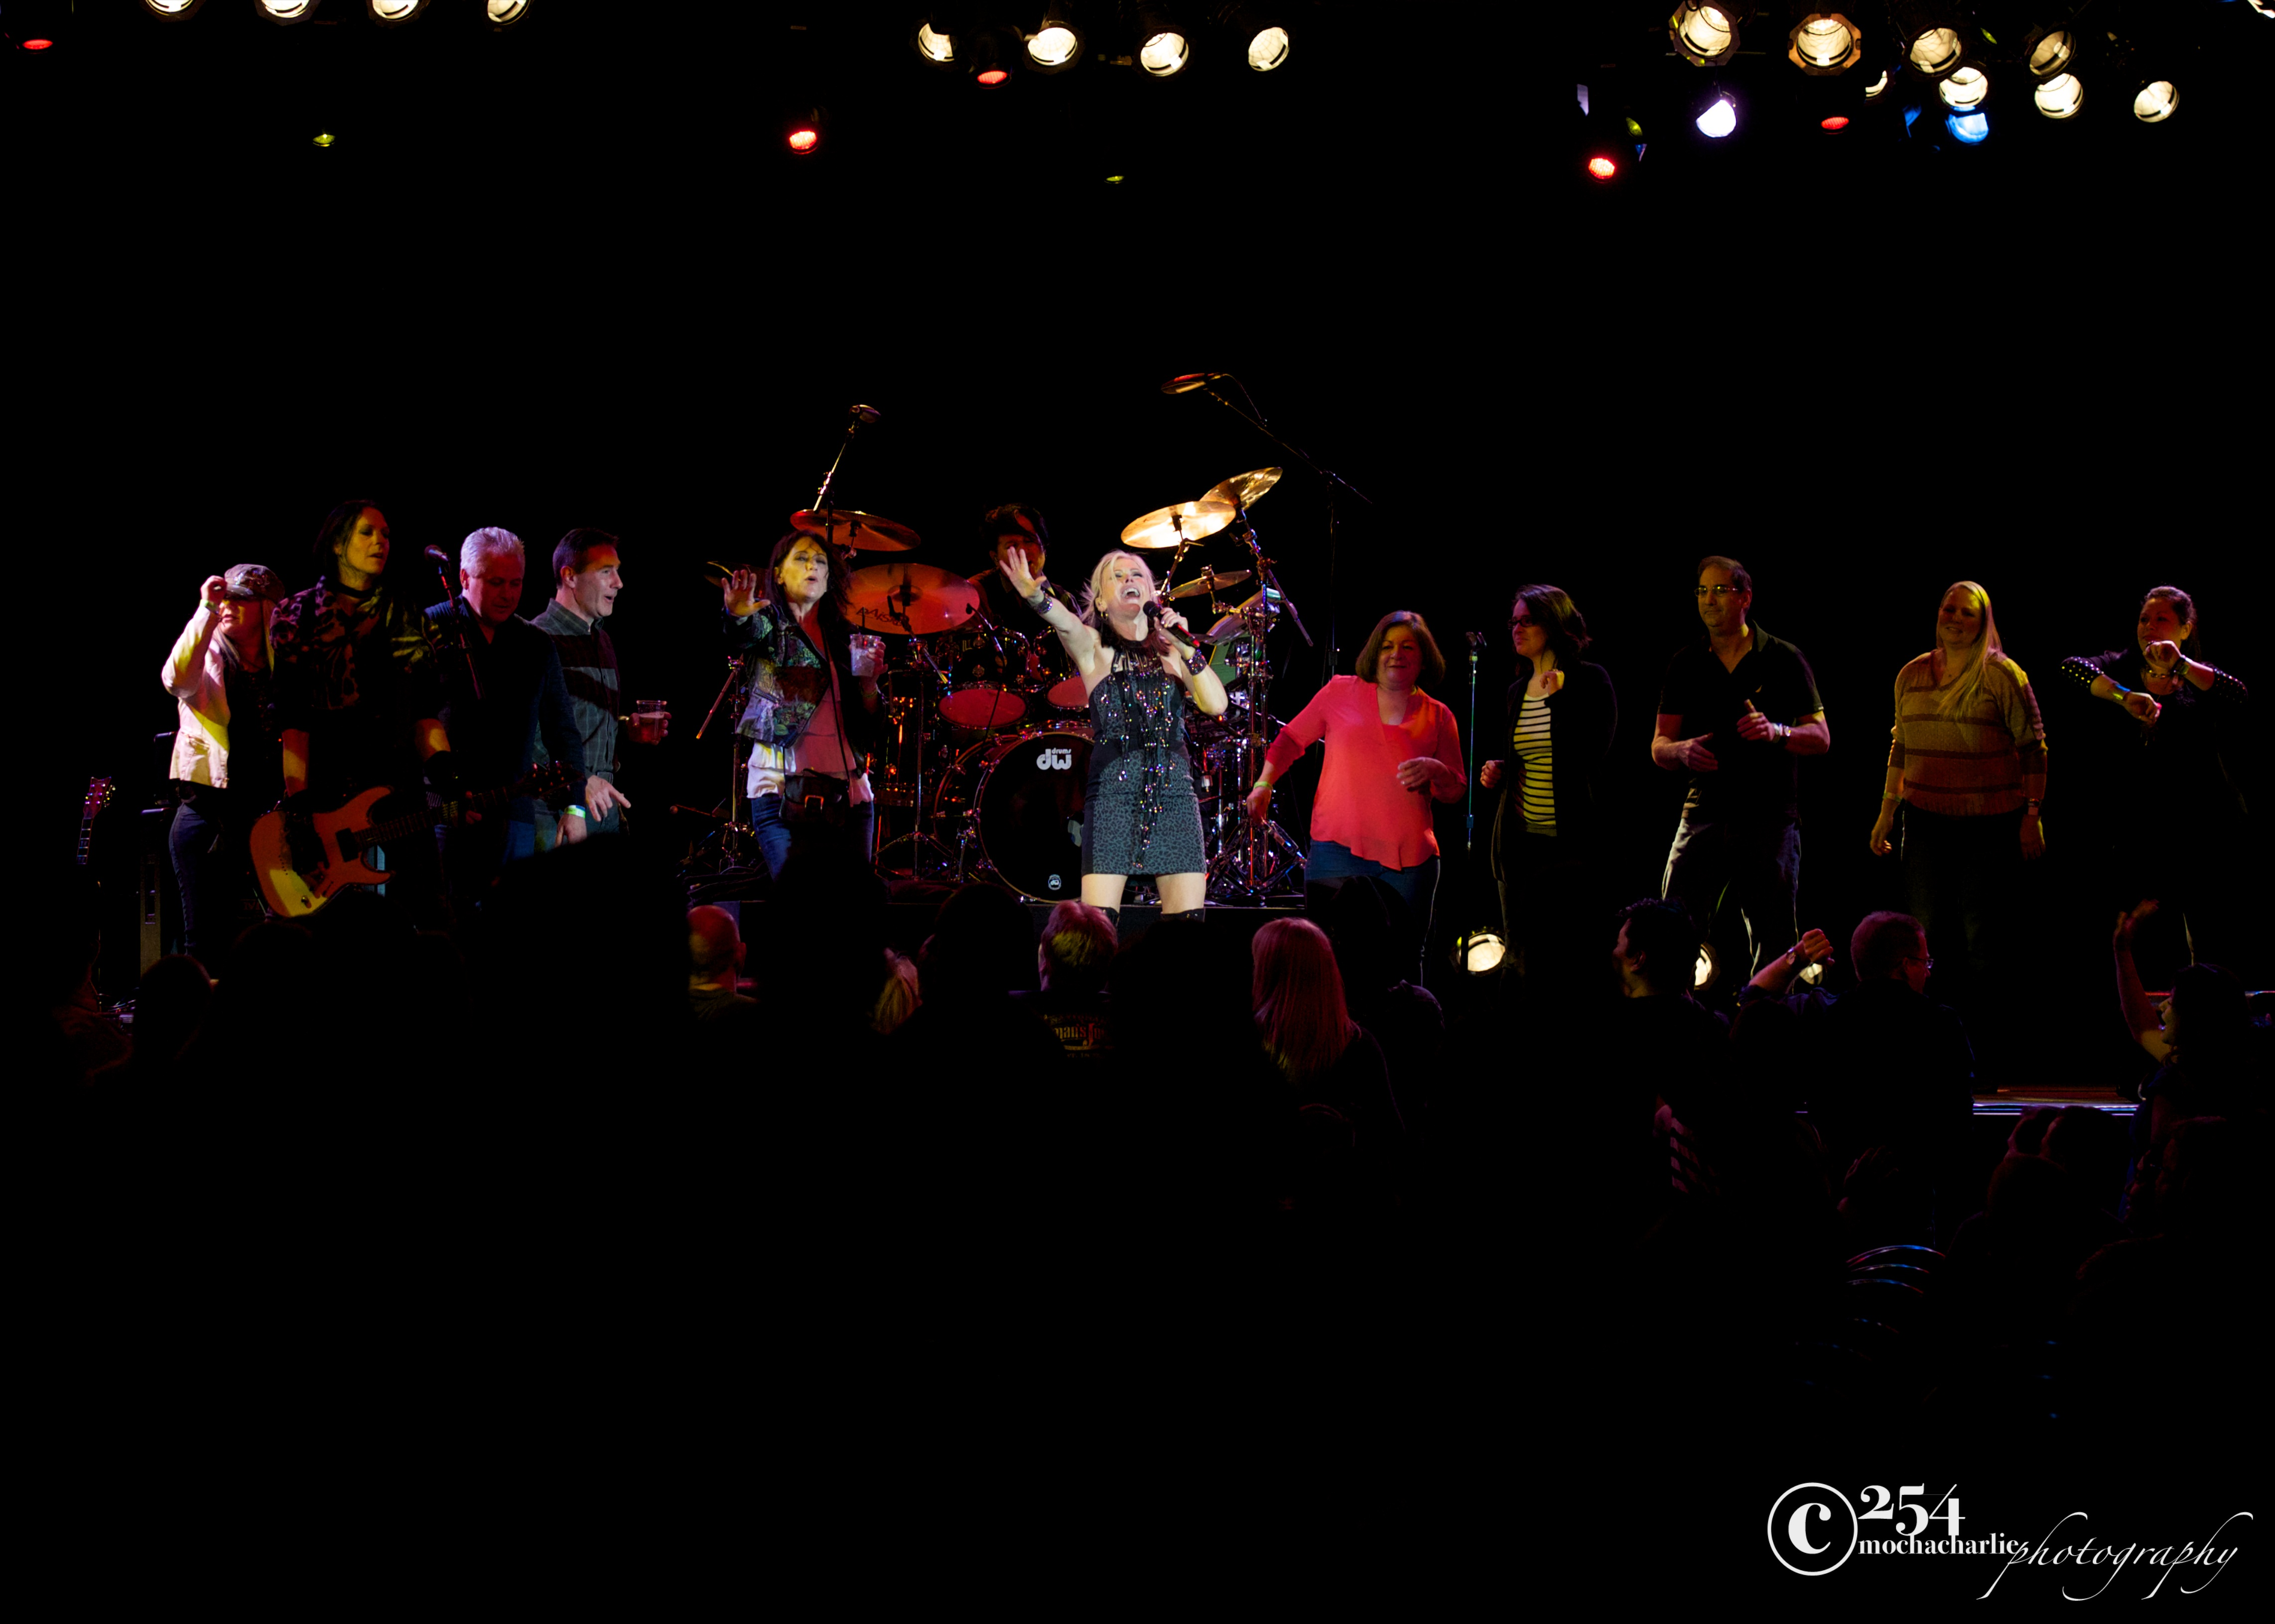 Berlin Live at Snoqualmie Casino (photo by Mocha Charlie)